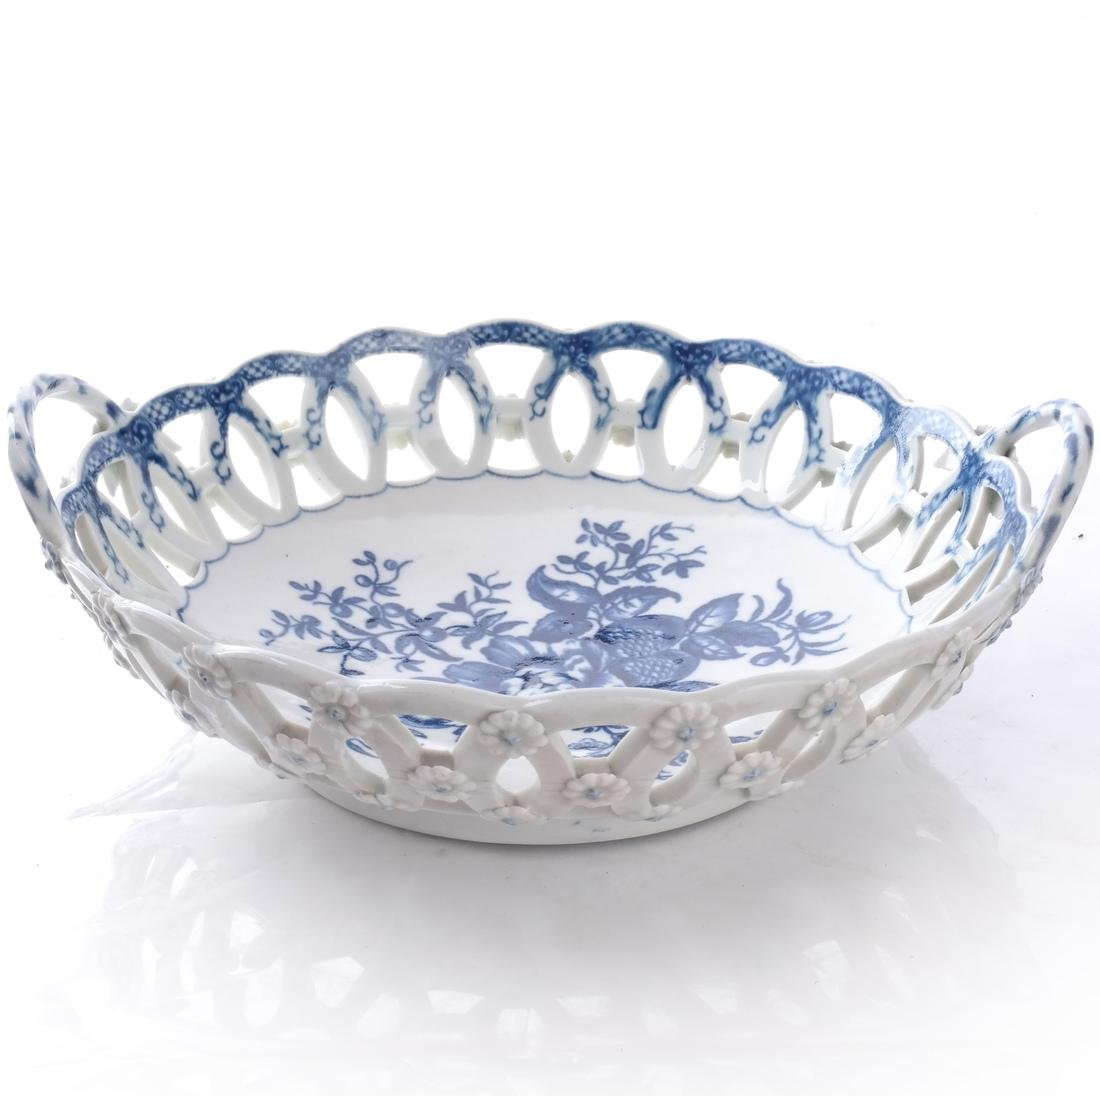 18th C. English Porcelain Basket